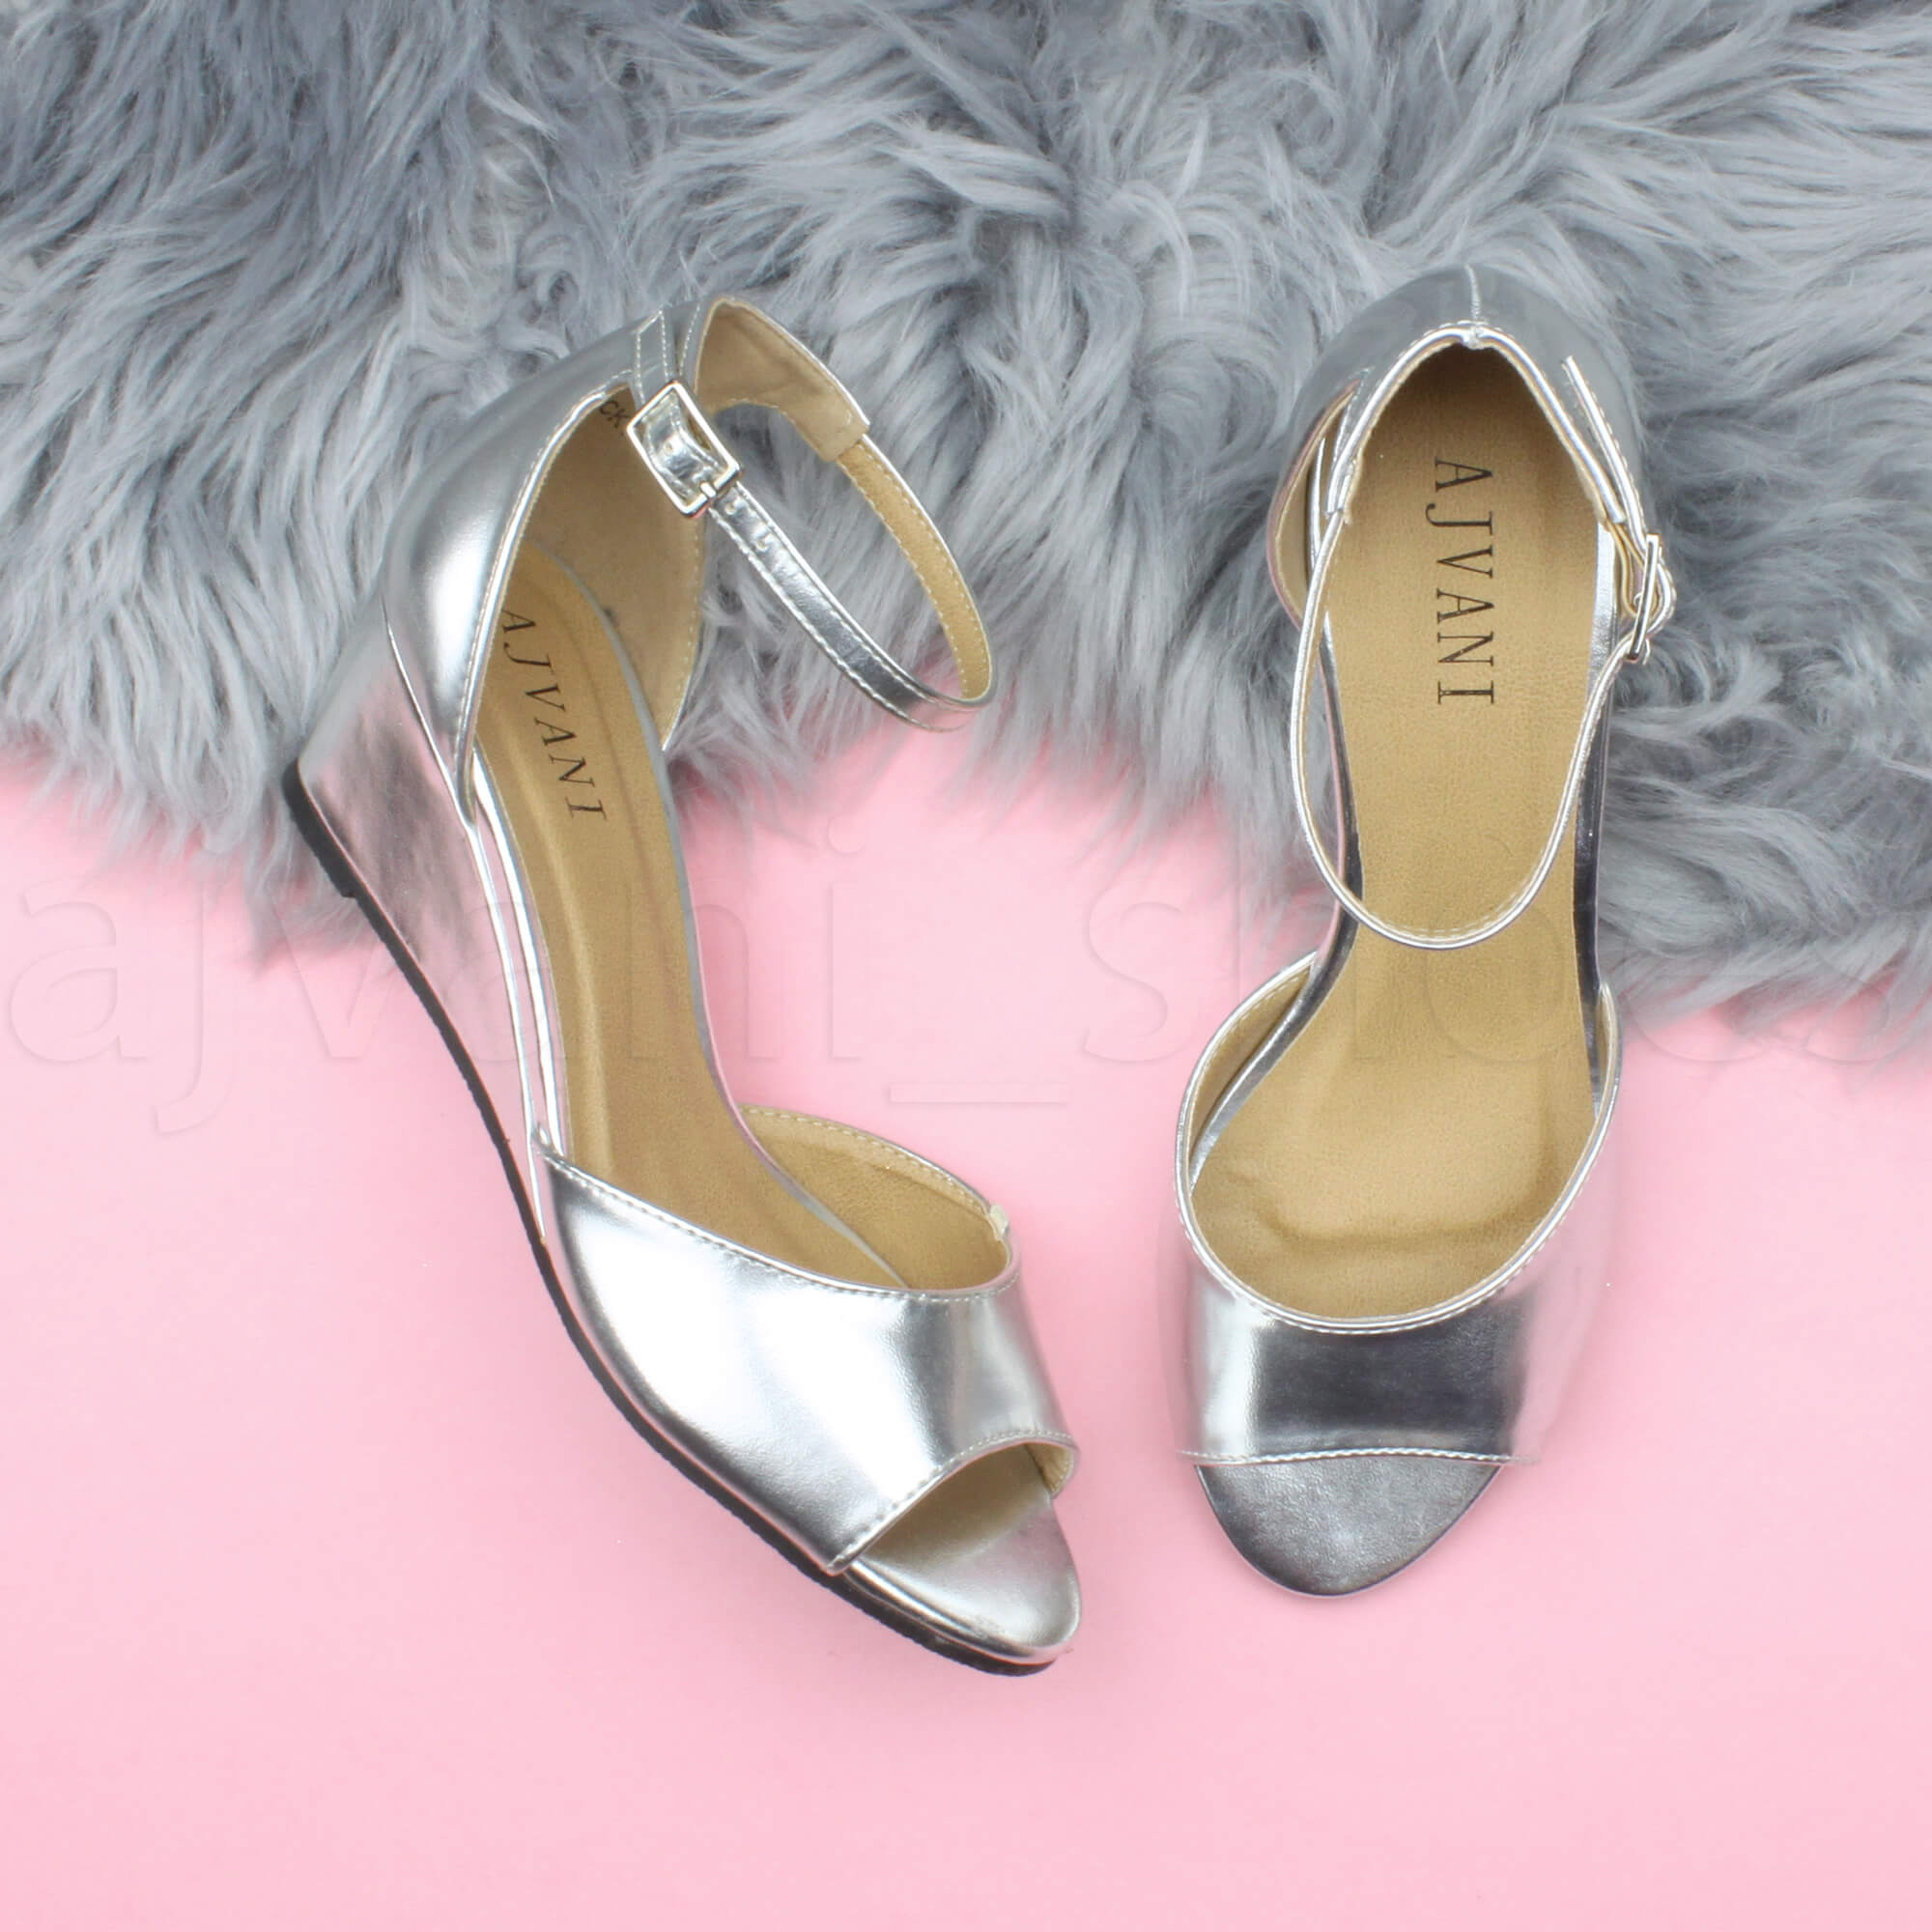 WOMENS-LADIES-LOW-MID-WEDGE-HEEL-ANKLE-STRAP-SMART-CASUAL-EVENING-SANDALS-SIZE thumbnail 149